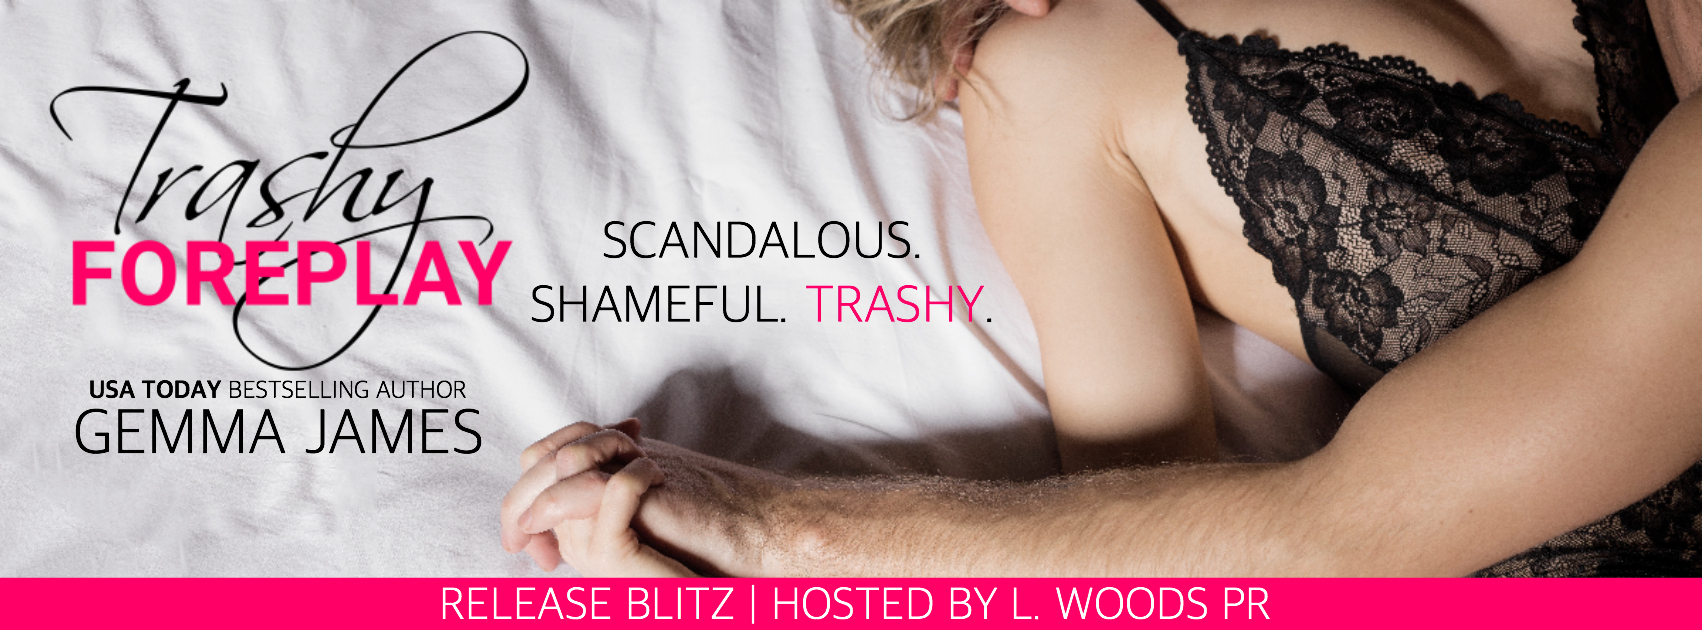 Release Blitz: Trashy Foreplay by Gemma James